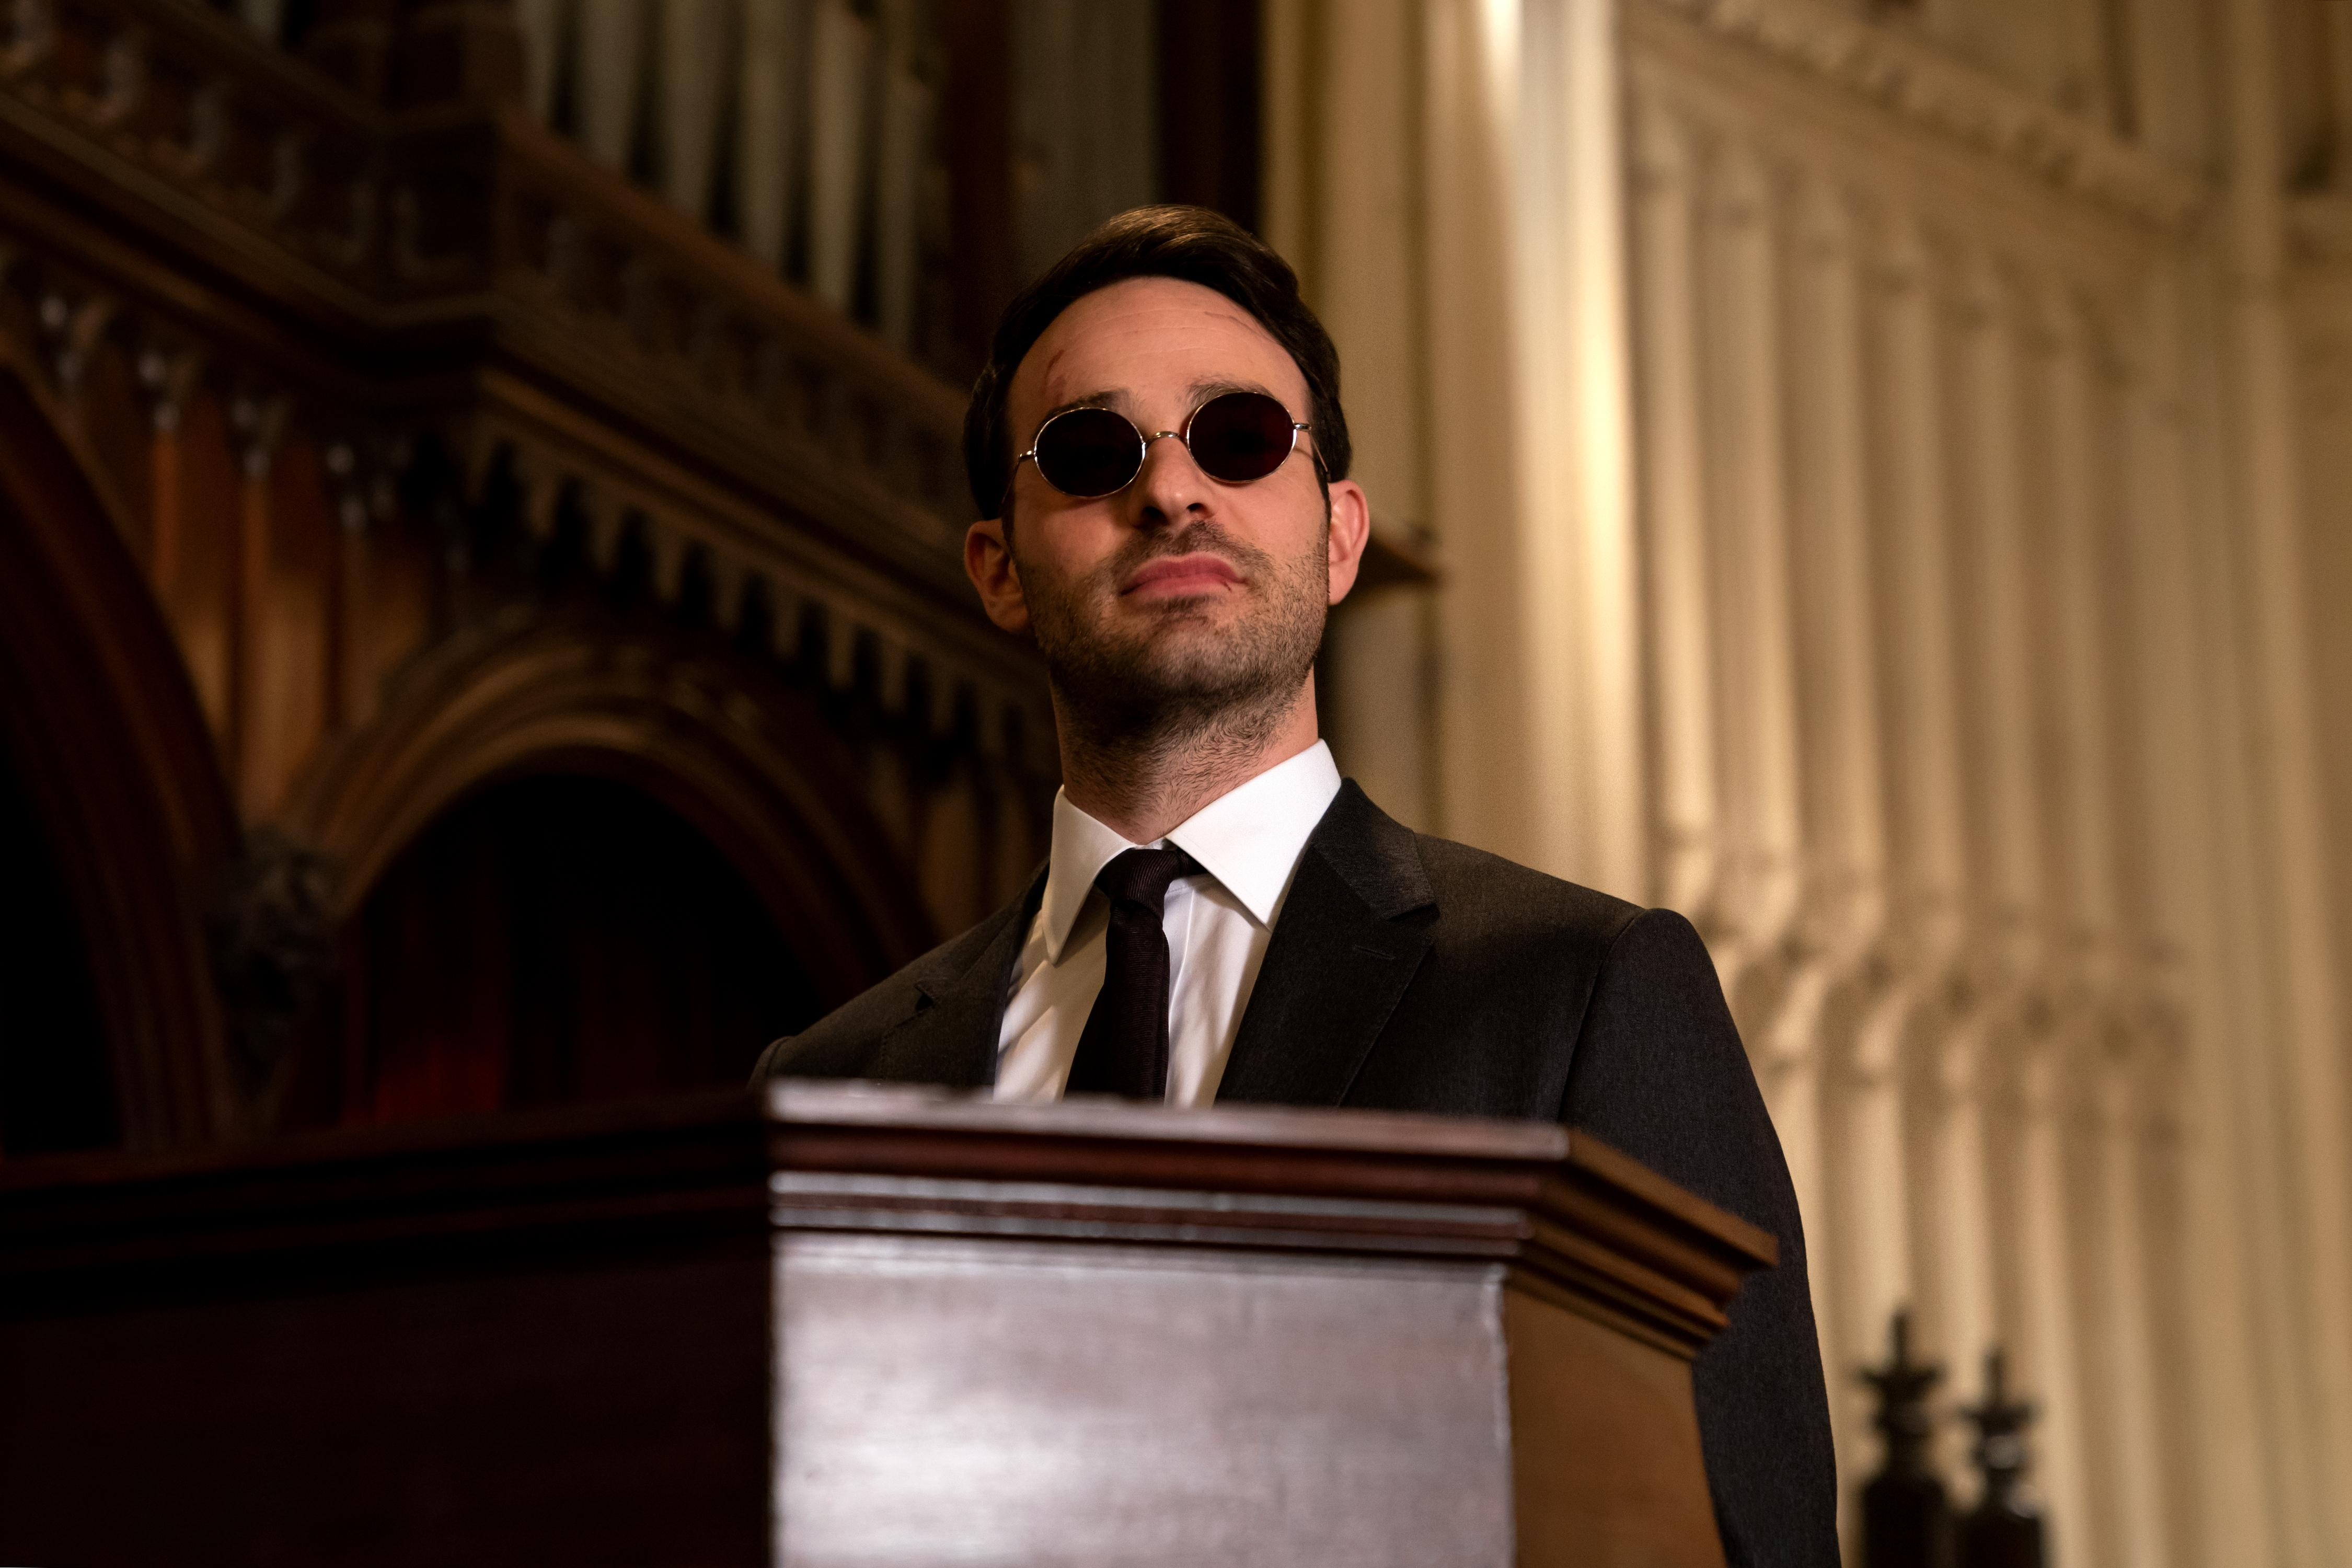 Daredevil actress says Netflix was responsible for cancellation, not Marvel